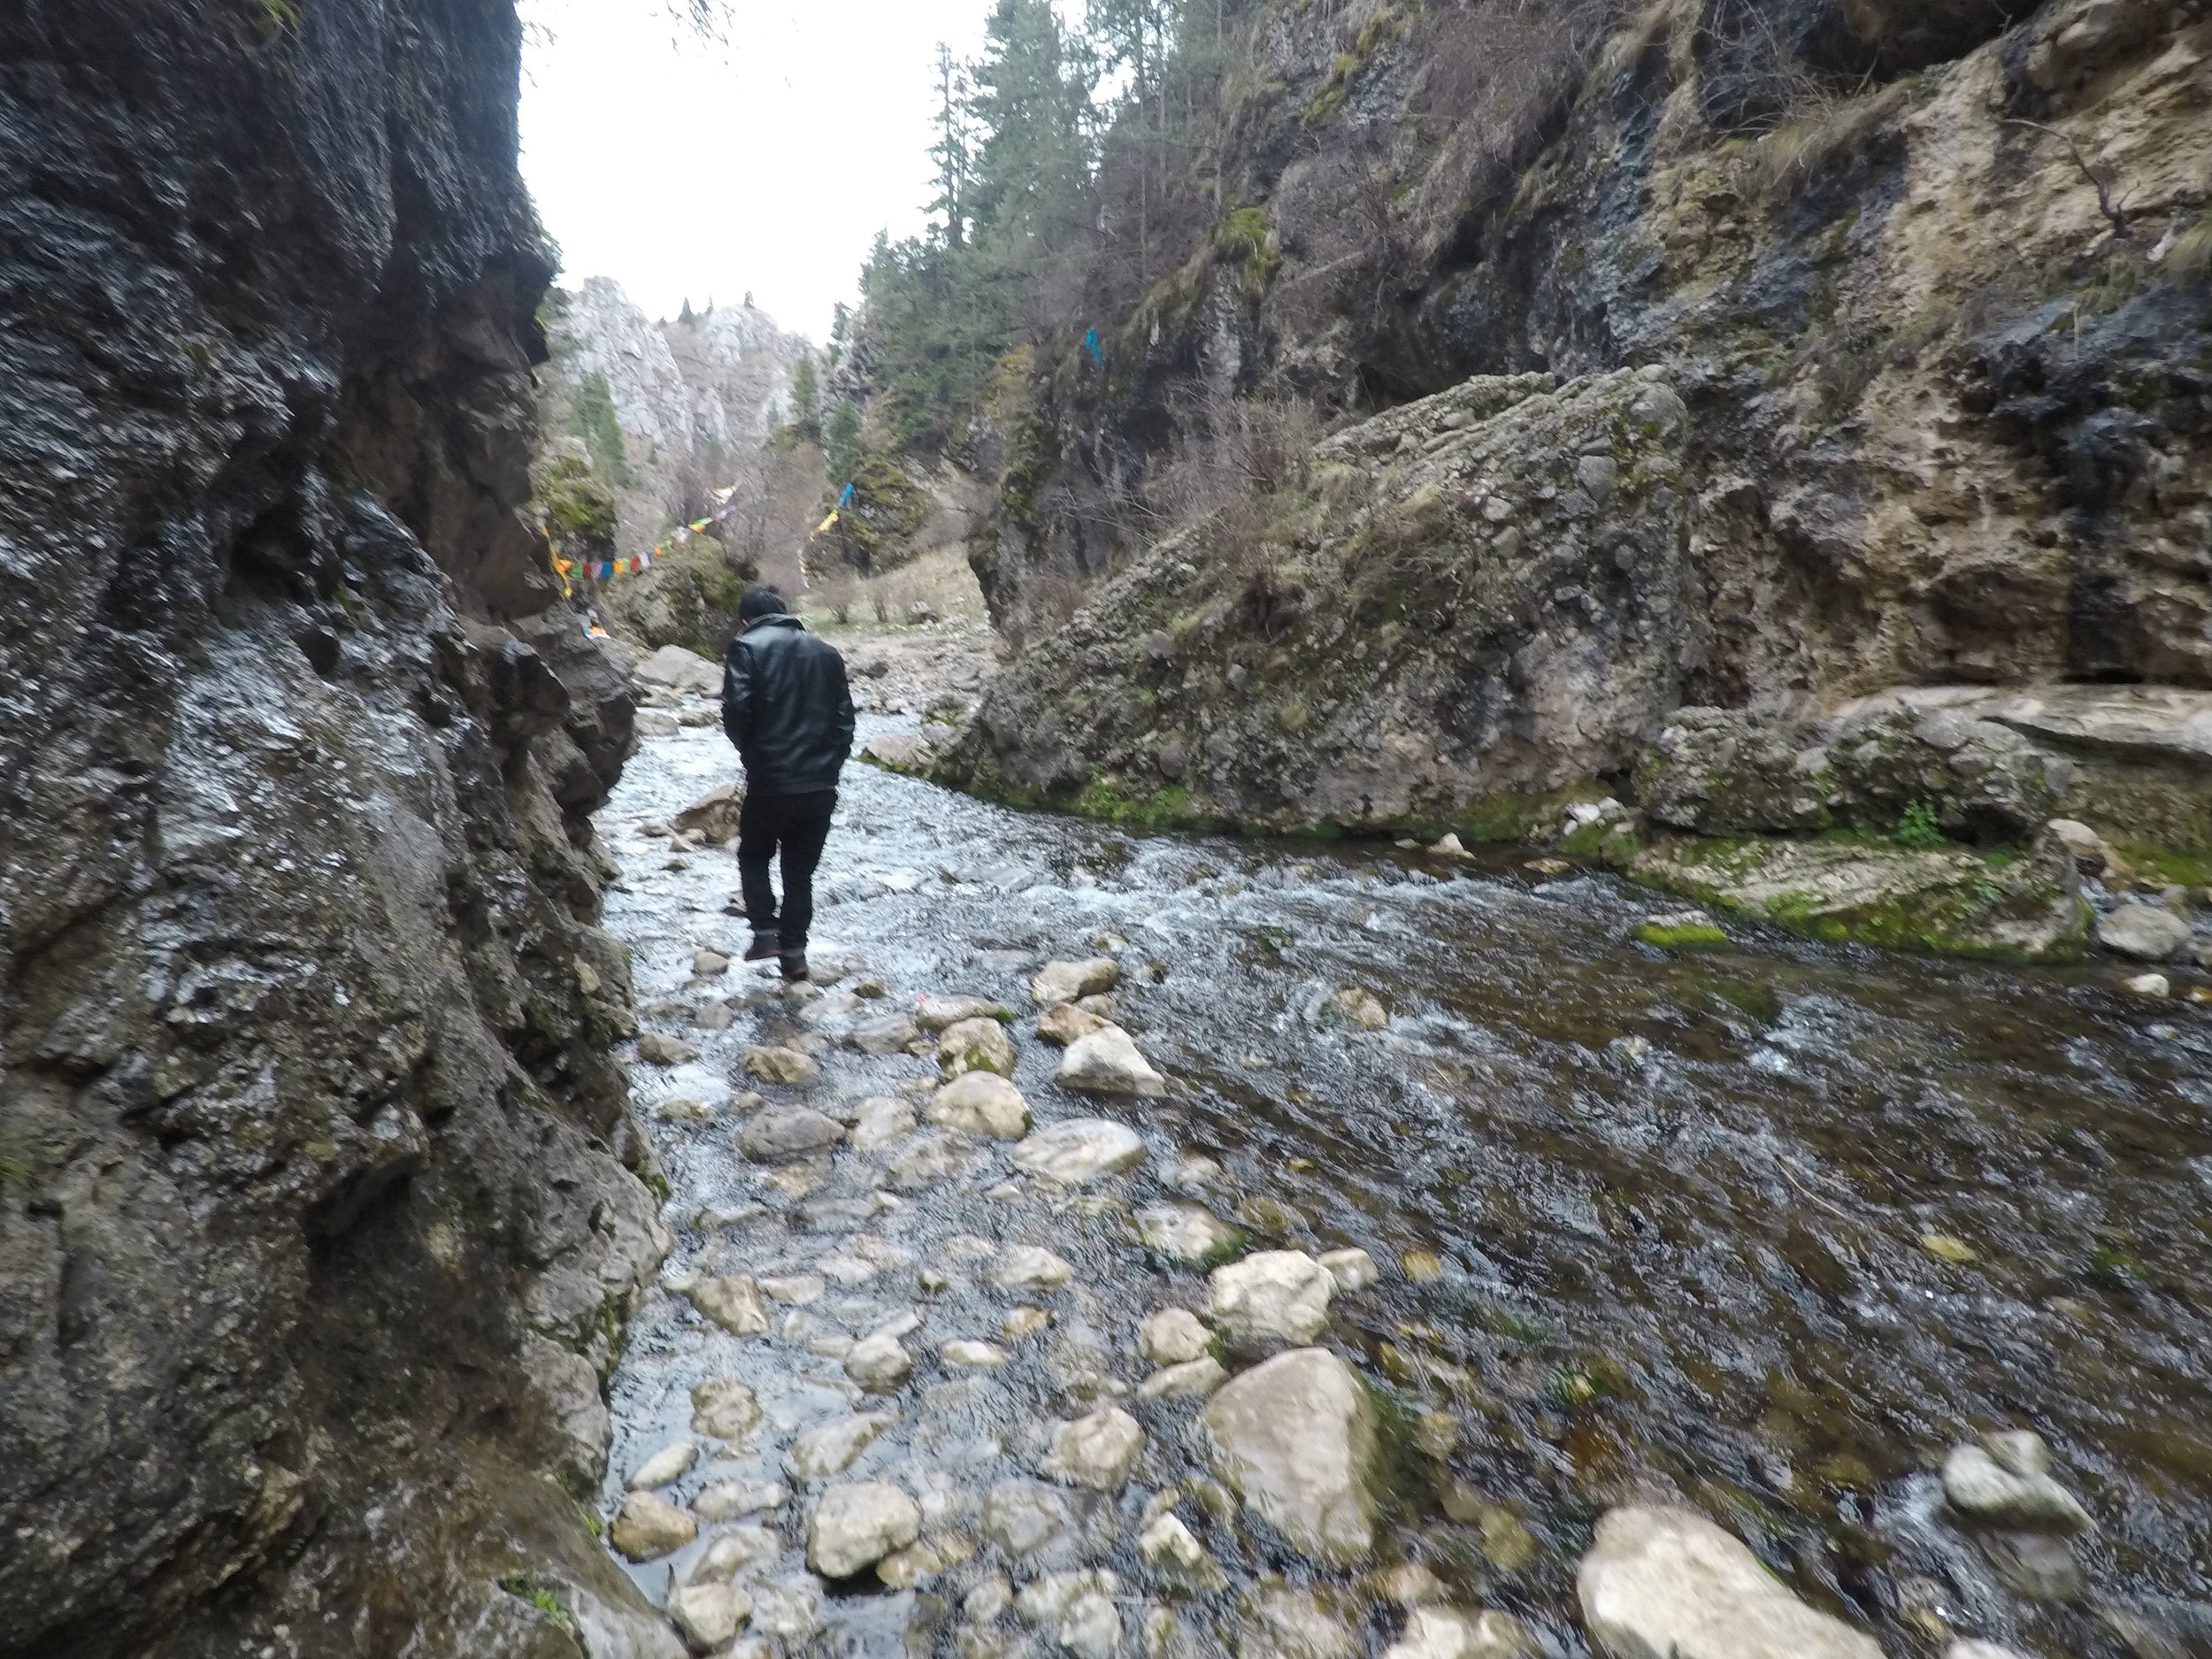 Following the stepping stones up the gorge.